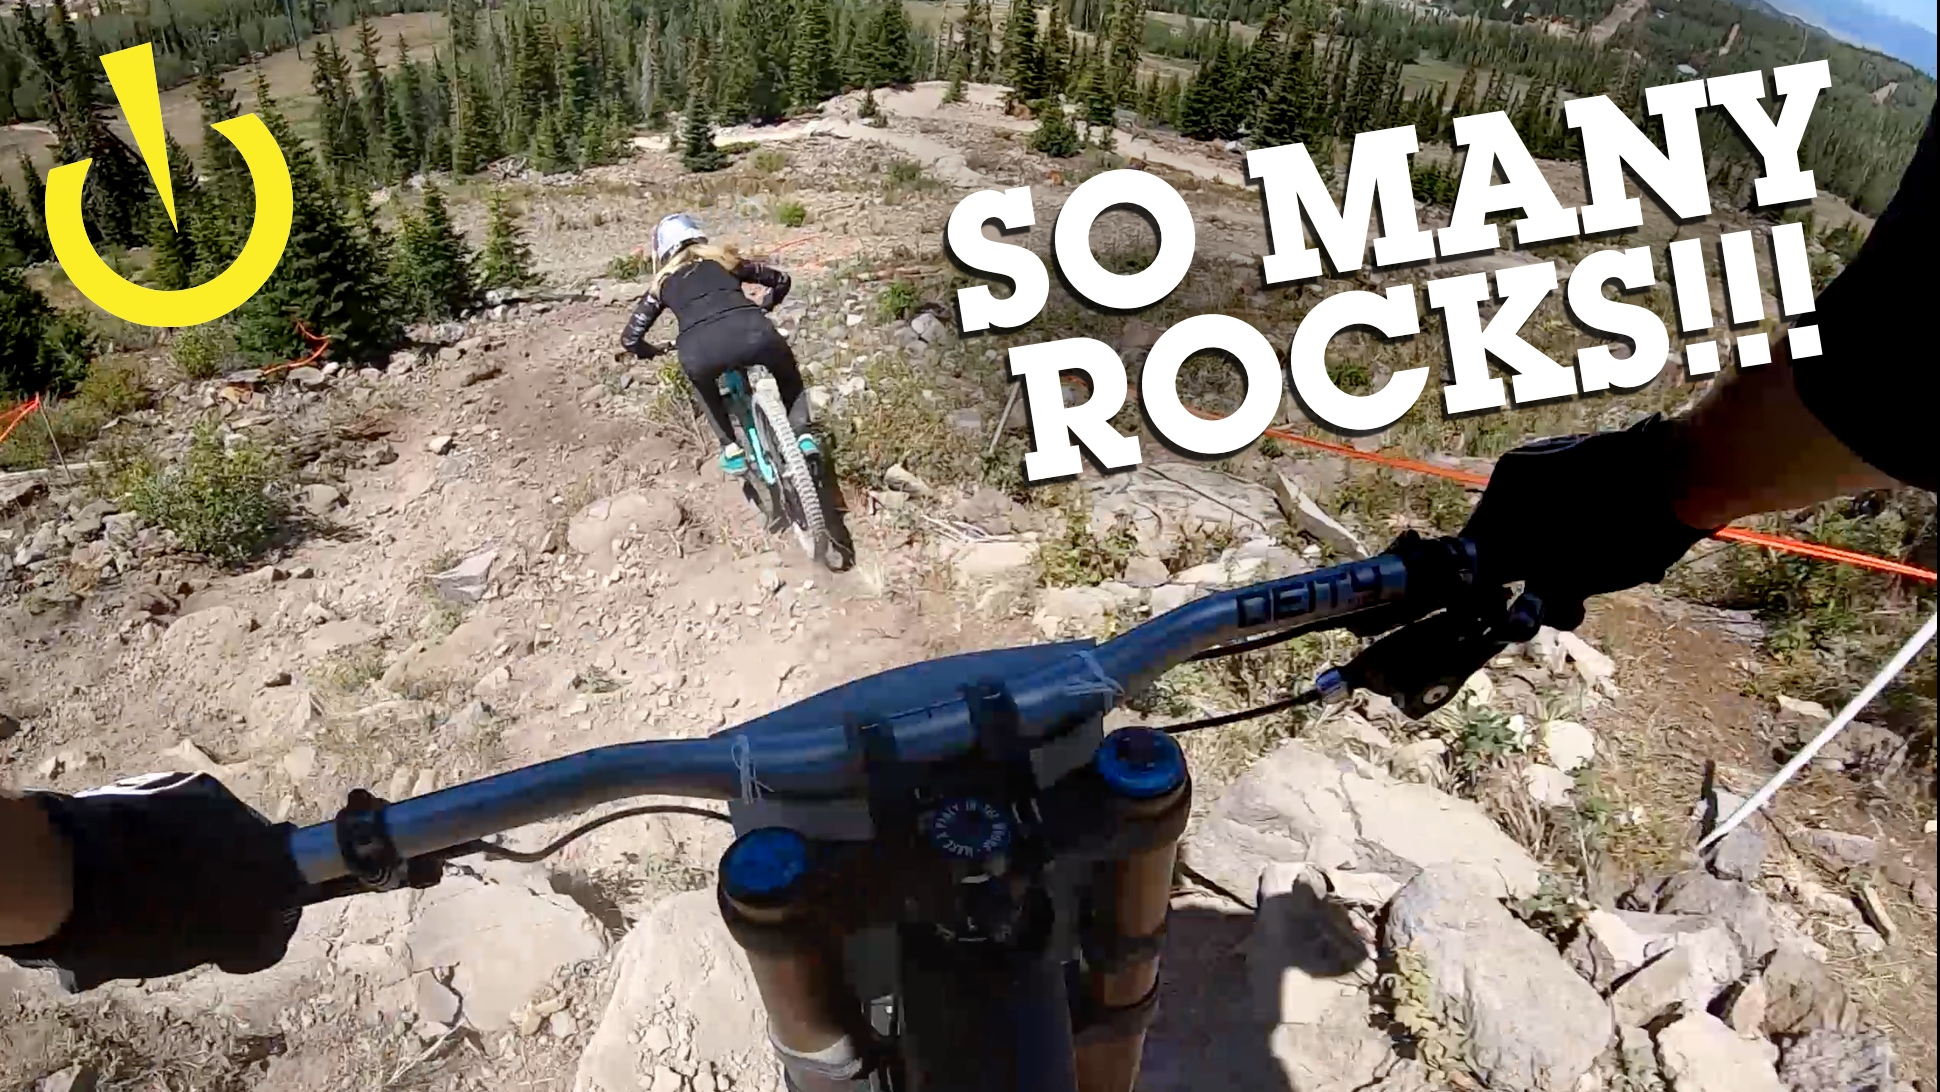 UTAH State DH Finals Course POV with Kera Linn and Steve Wentz - 4K 60p